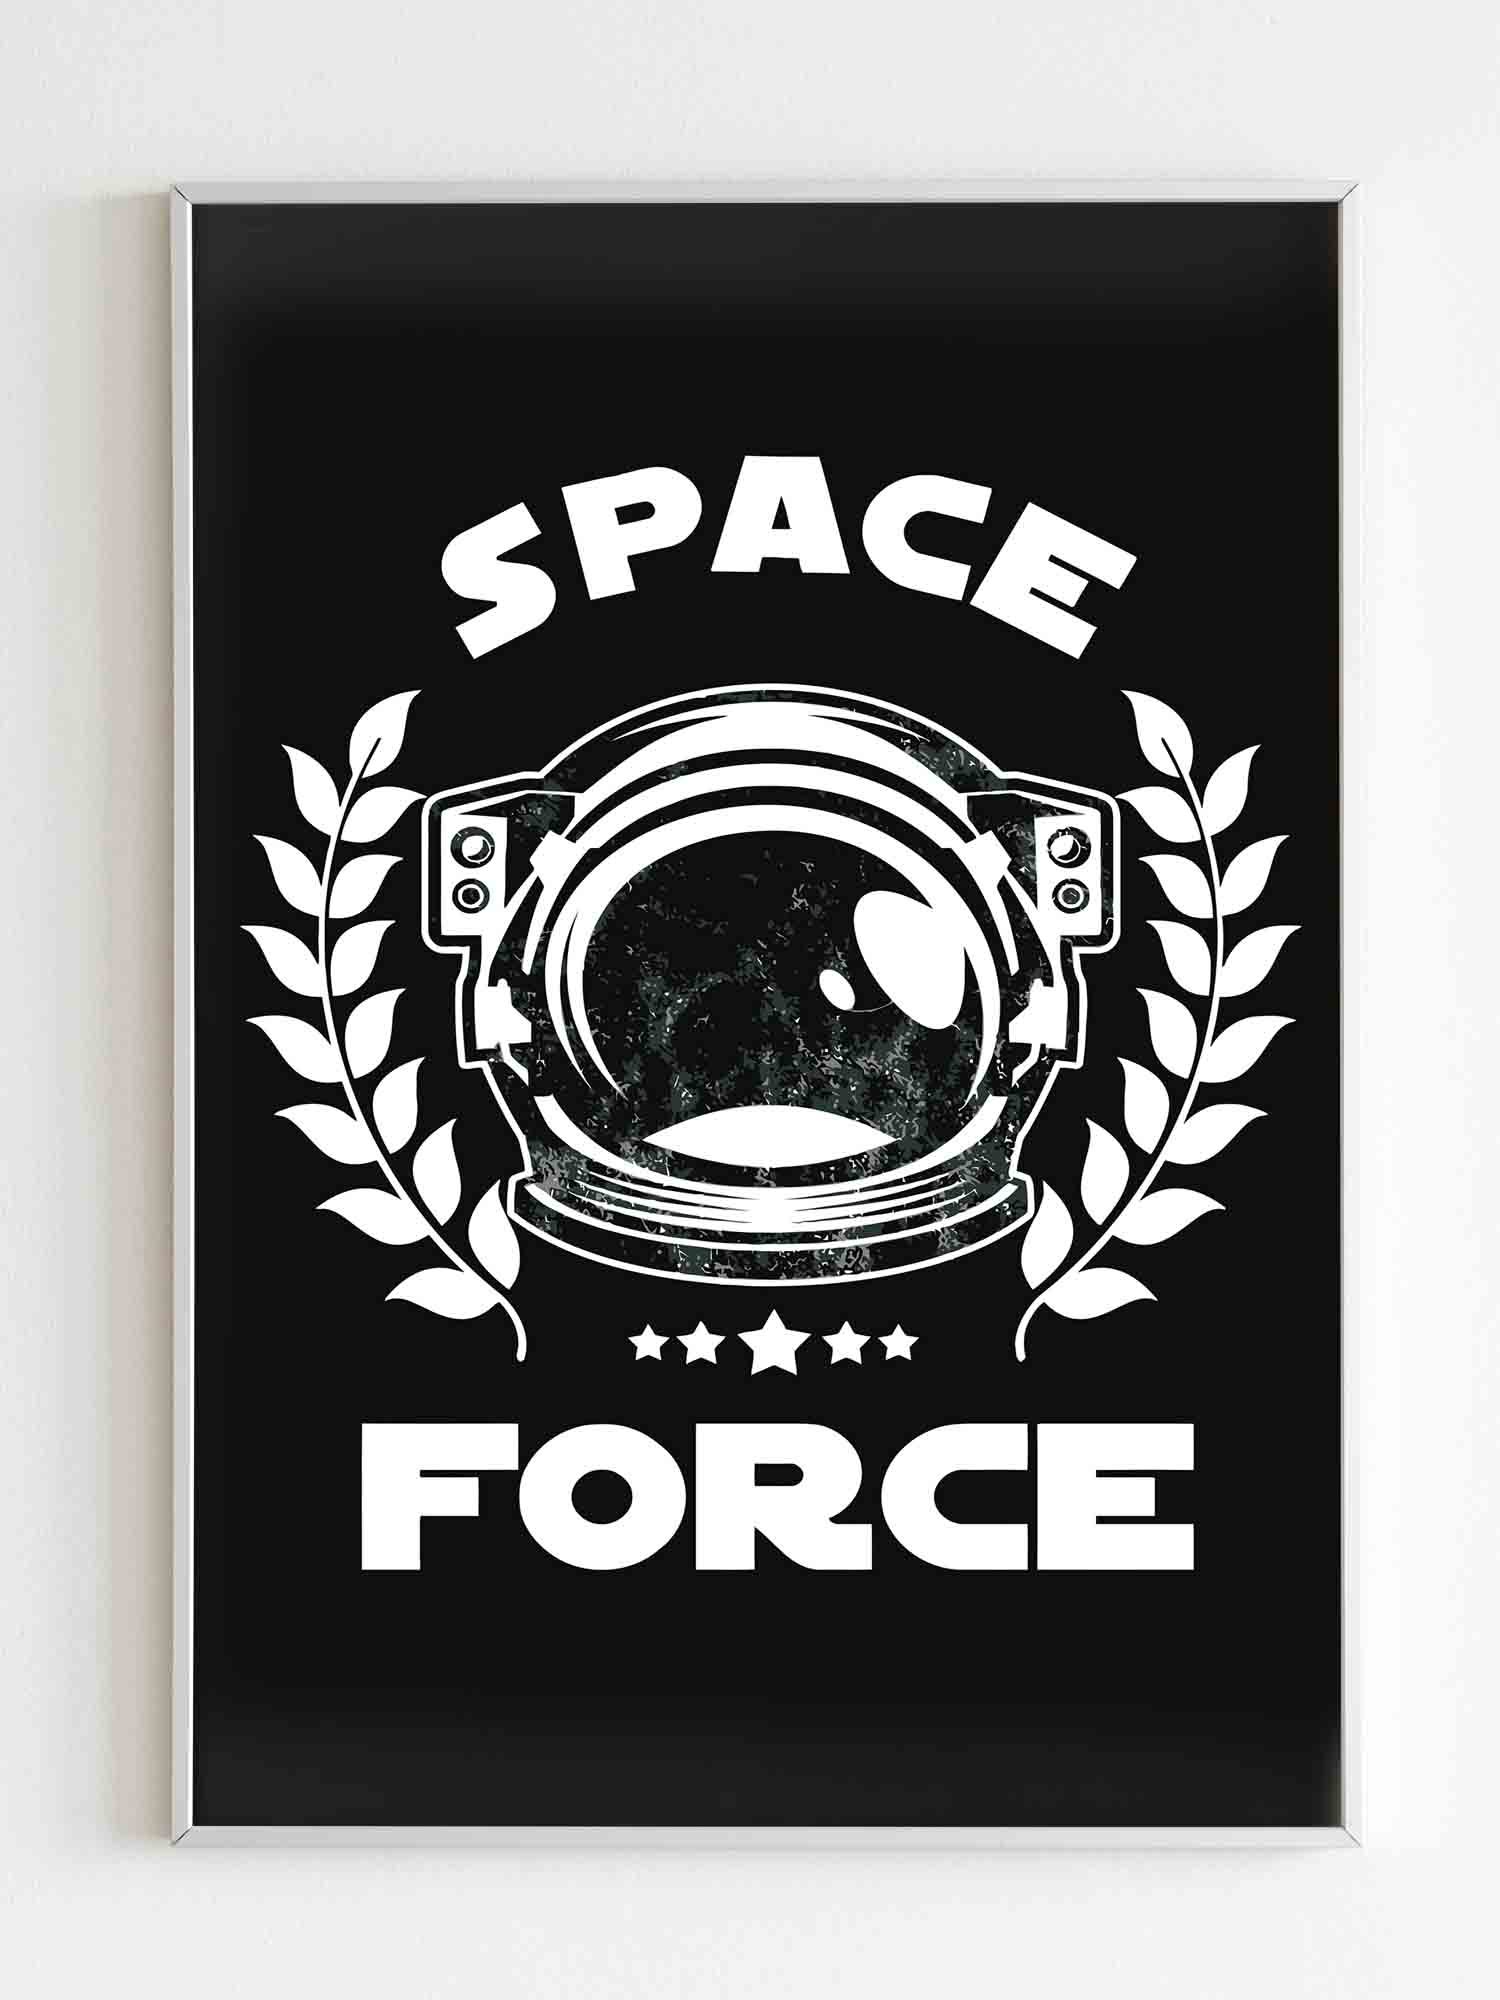 Astronaut Space Force Poster